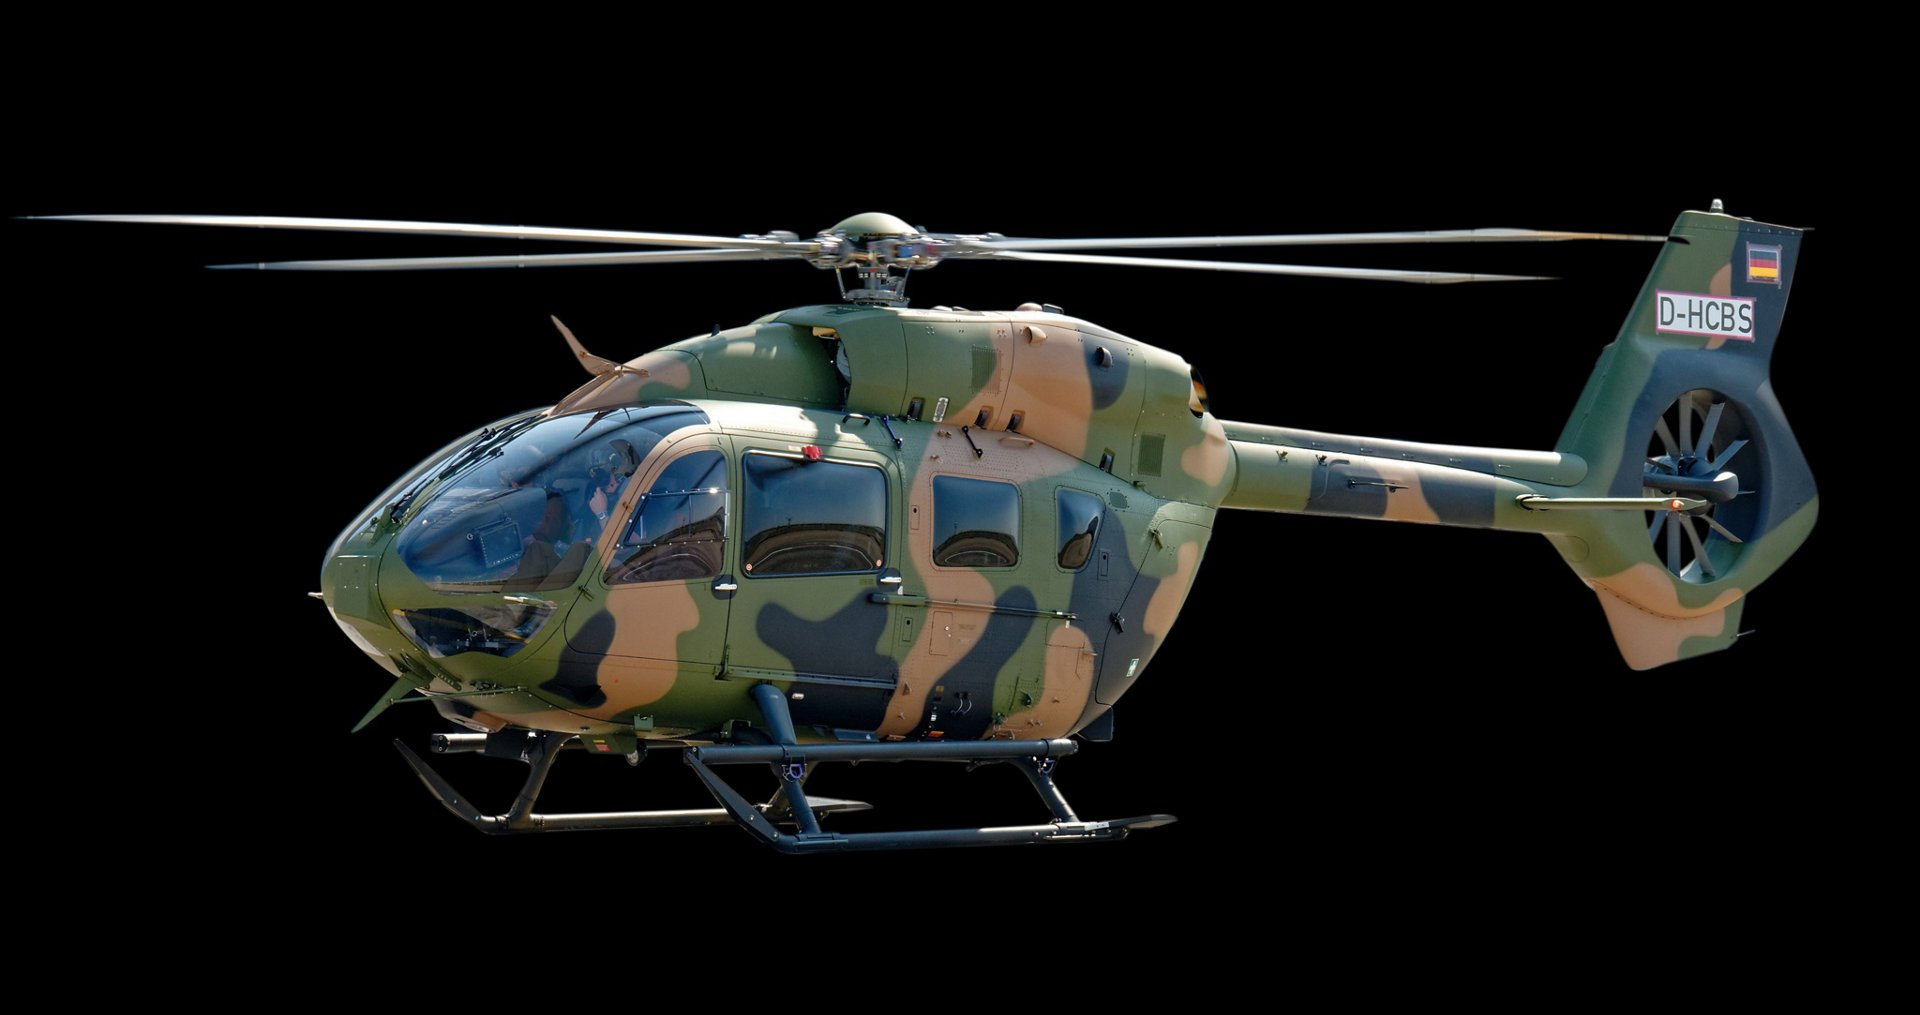 Airbus Helicopters has joined hands with over 20 Australian partners to form Team Nightjar, as the consortium launches its solution to Project LAND 2097 Phase 4. Under this Project, the Commonwealth of Australia is seeking a fleet of helicopters to support the Australian Defence Force's Special Operations.